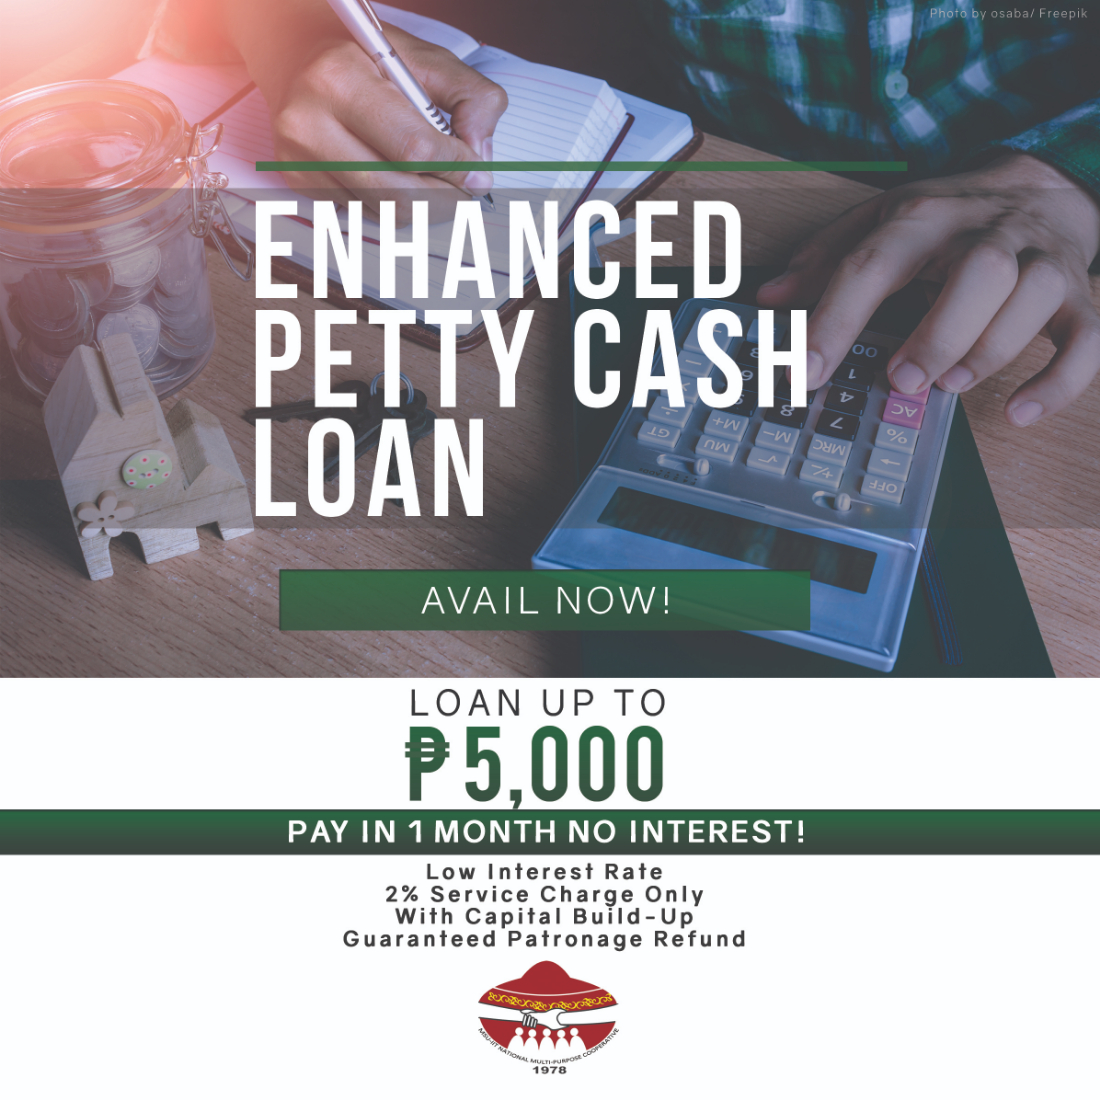 Enhanced Petty Cash Loan